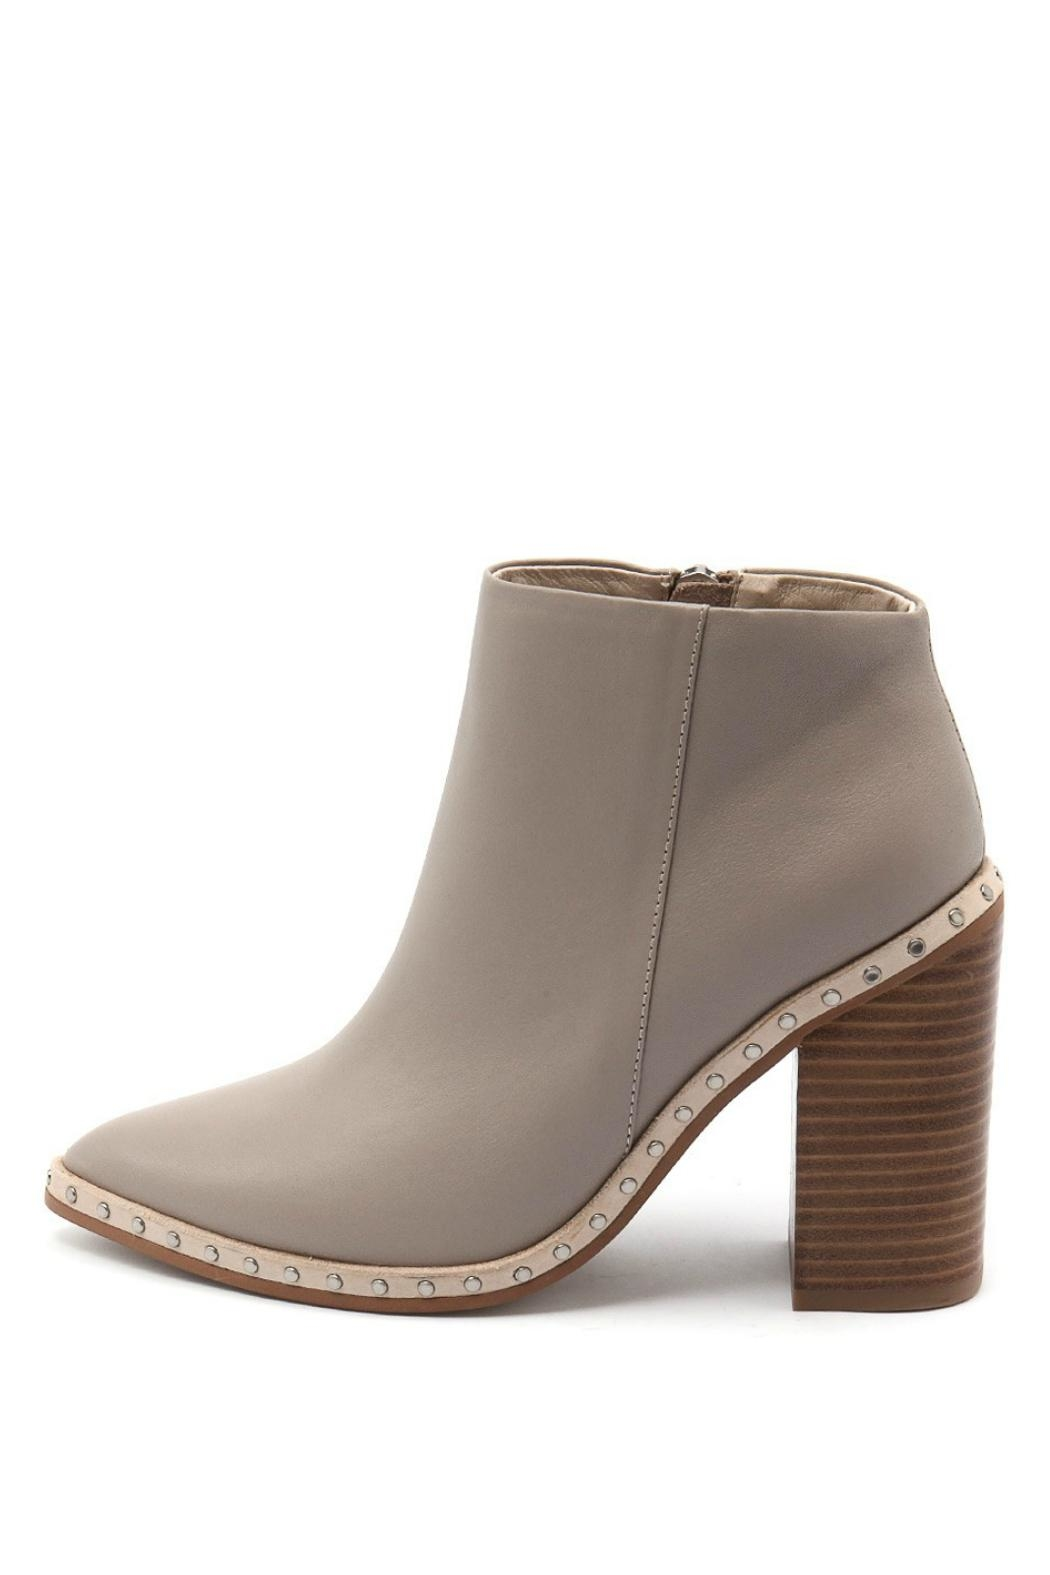 SOL SANA Ajax Booties - Main Image